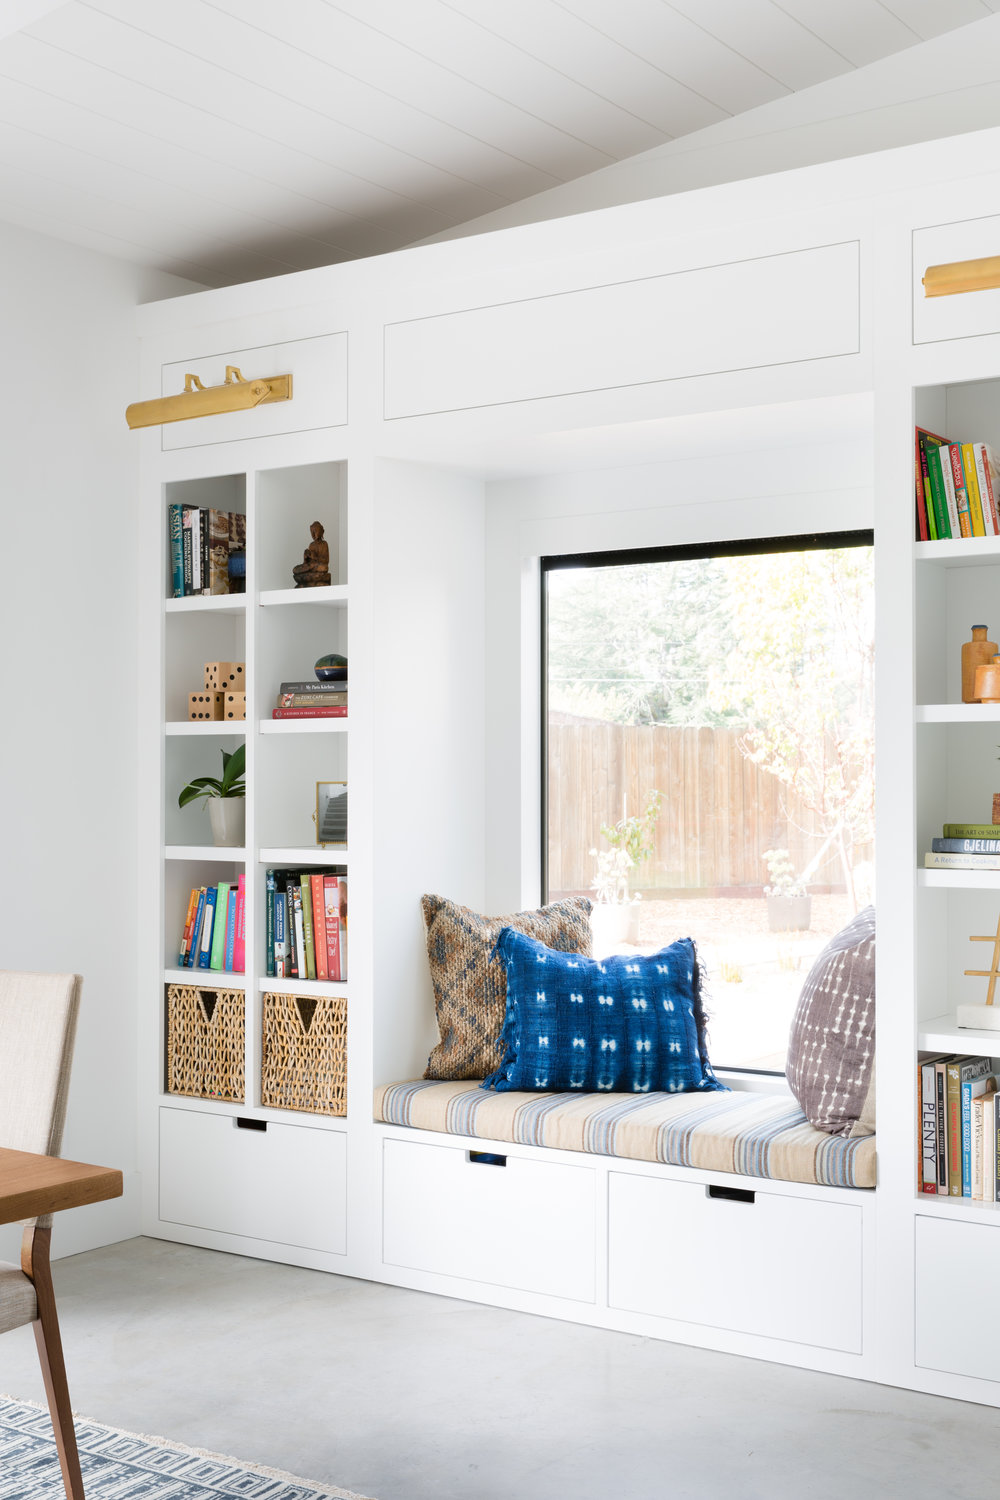 built-in window seat and shelves - Crazy Wonderful